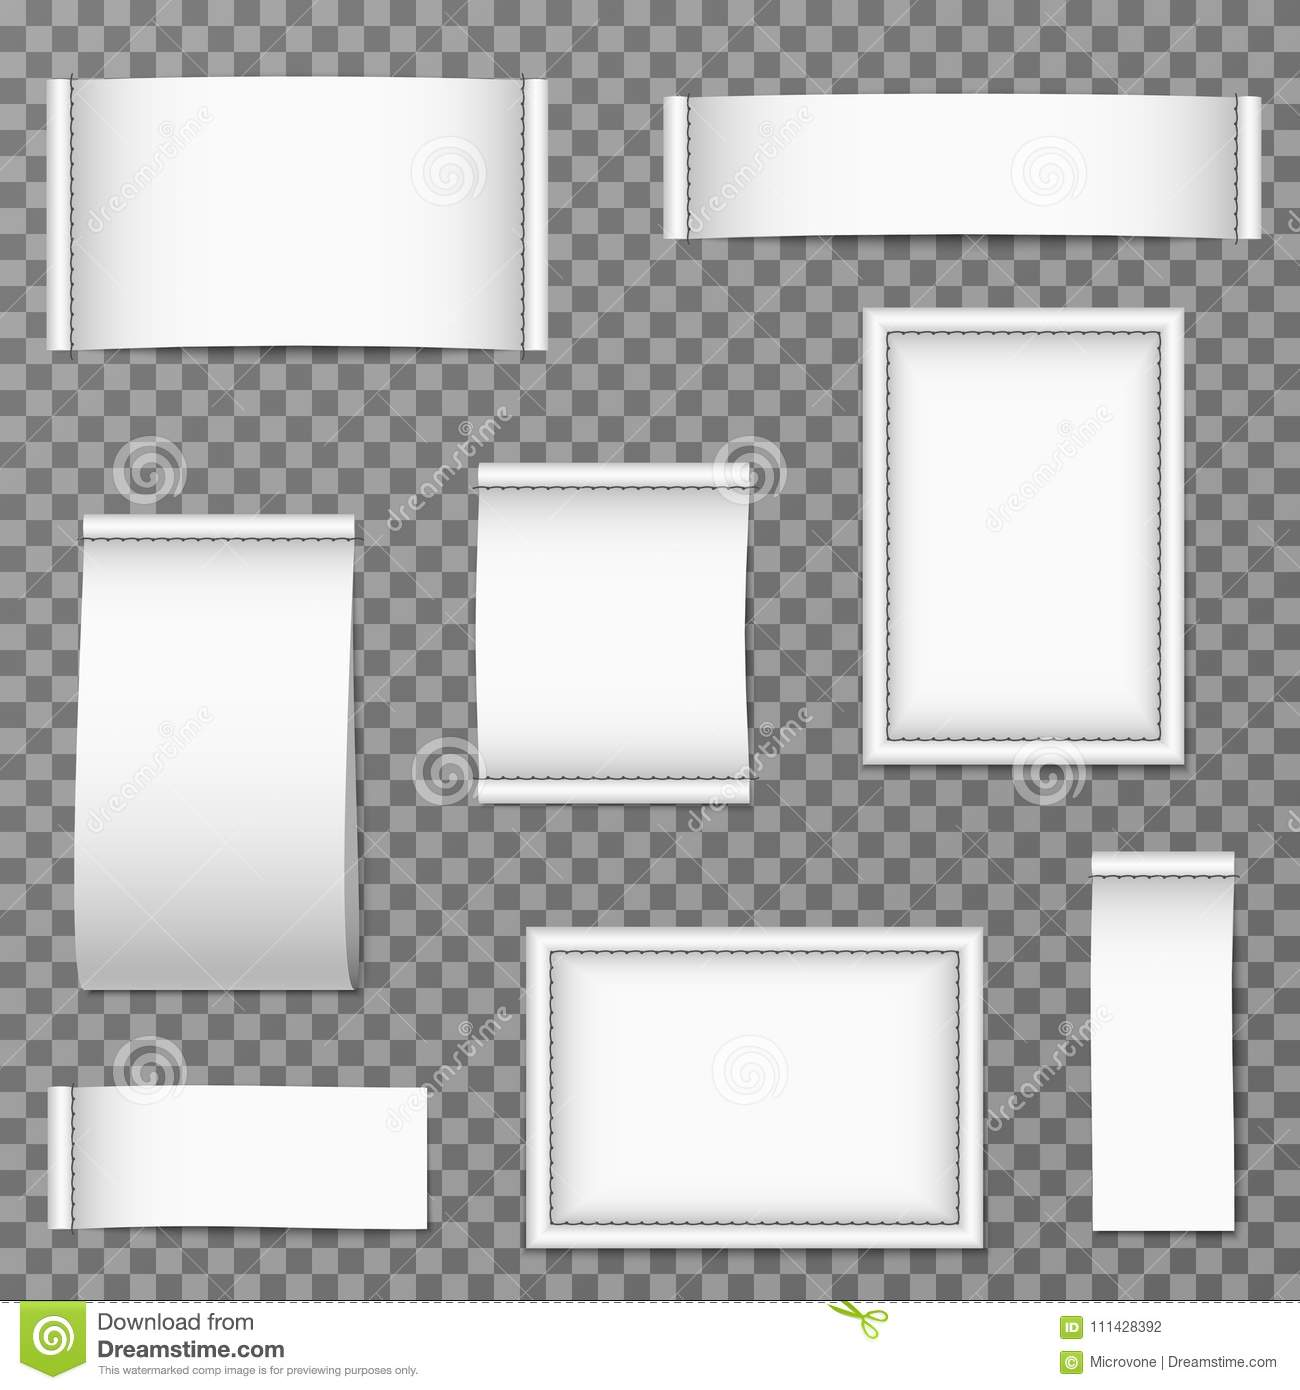 Blank Textile Clothing Labels Isolated Vector Set Stock Vector ...